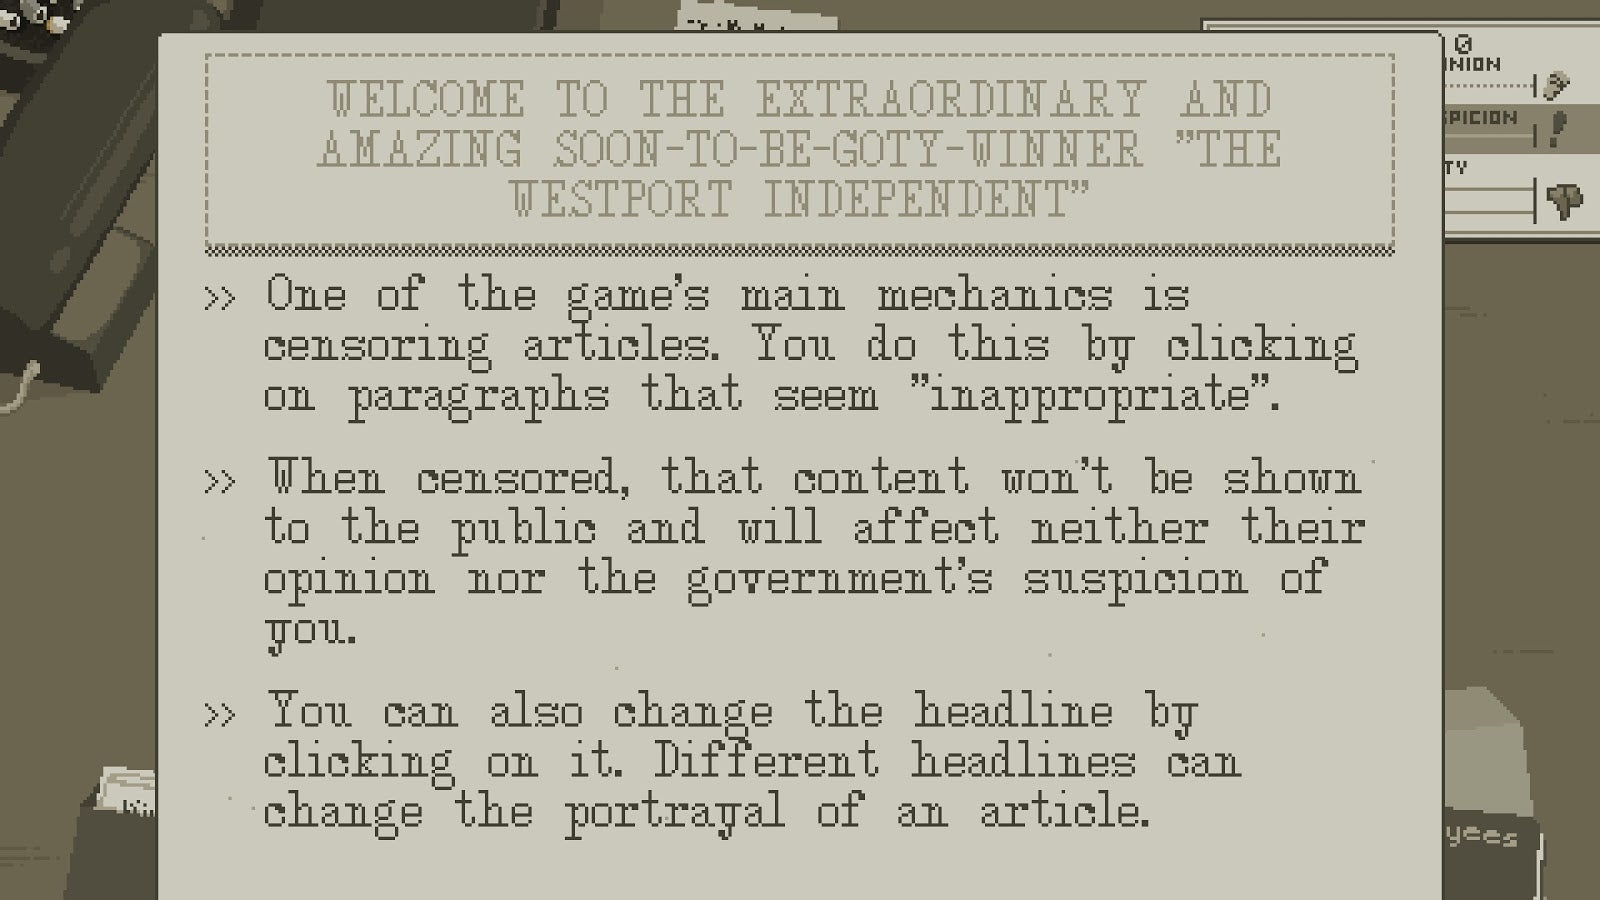 Westport Independent Is An Intense Game About Censoring The News